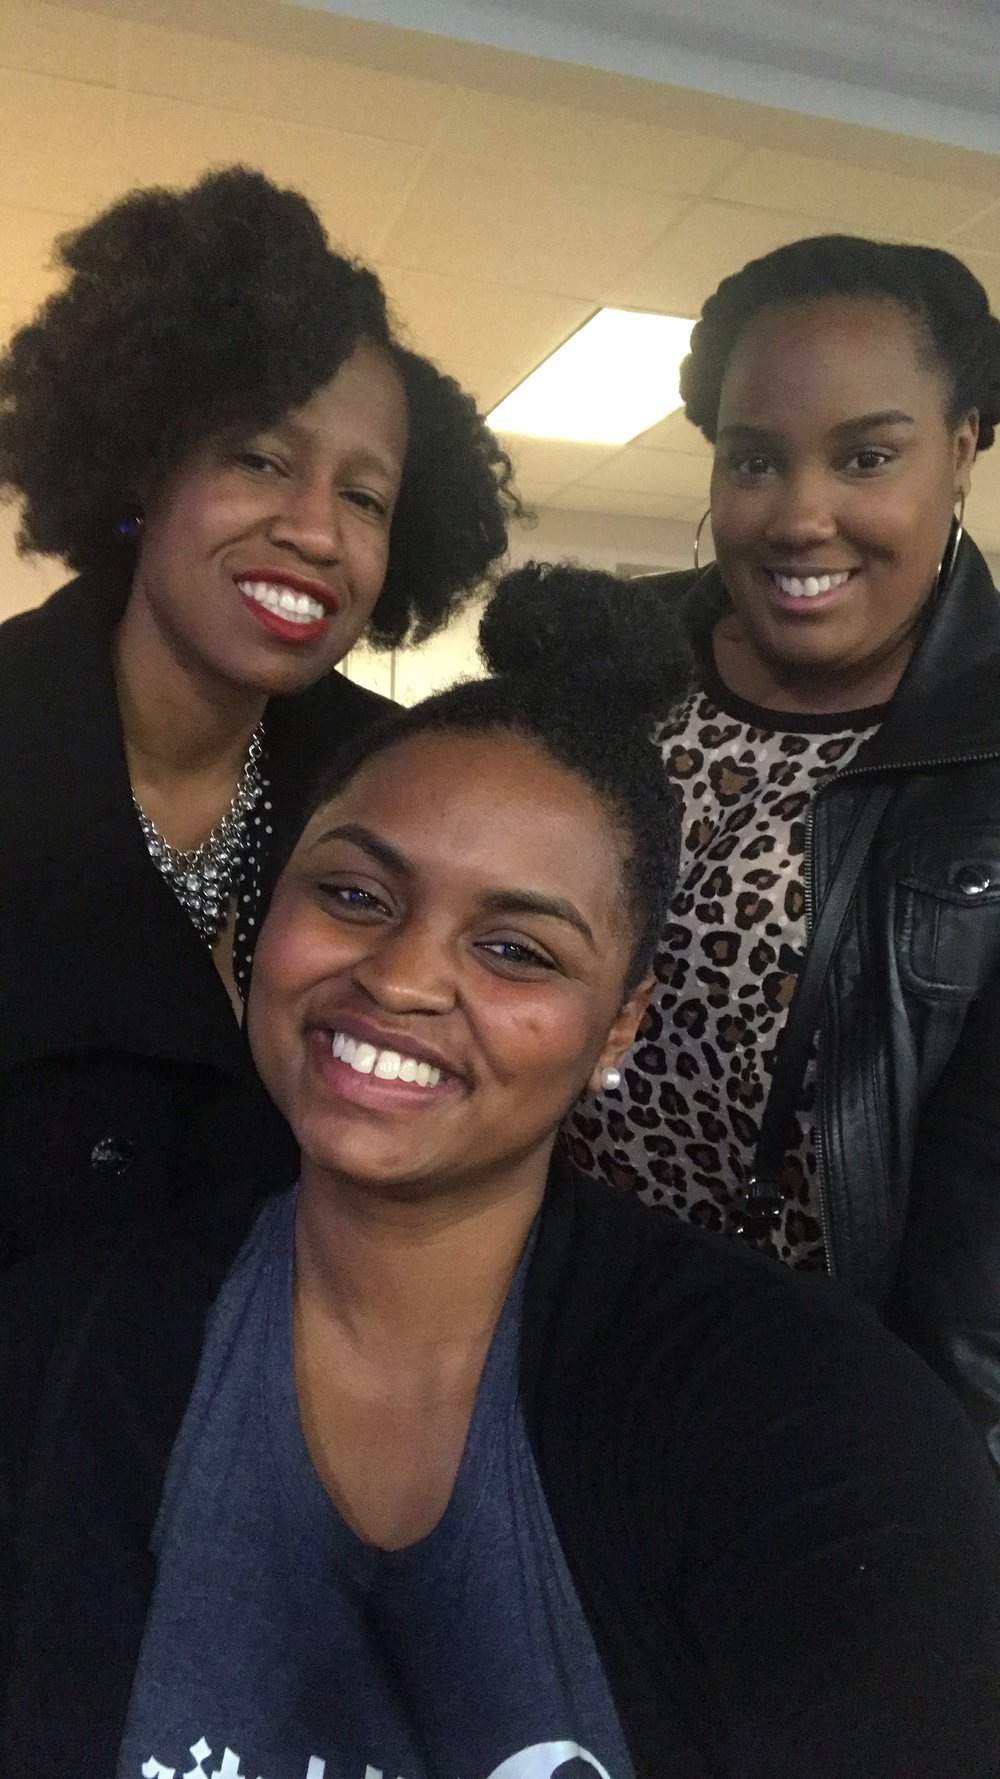 Shavonne and two of her close friends (Dyla H and  Tanisha Pinex ) who supported her throughout the pitch process.